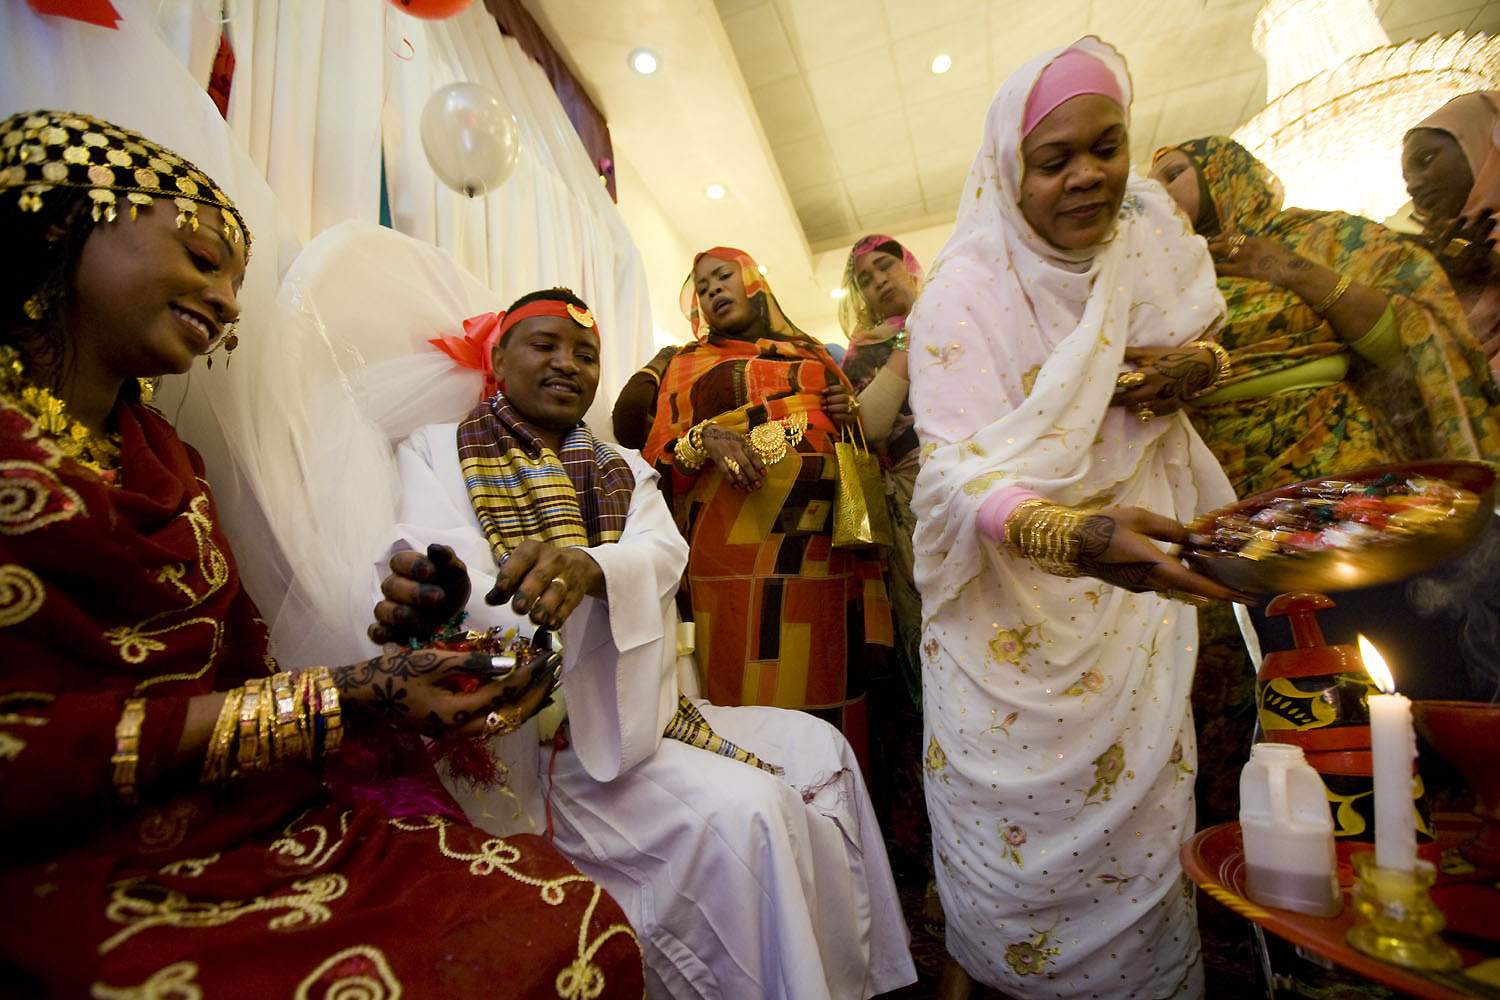 A reunited couple celebrates their wedding at a banquet hall in Brooklyn three years after being engaged in Darfur.